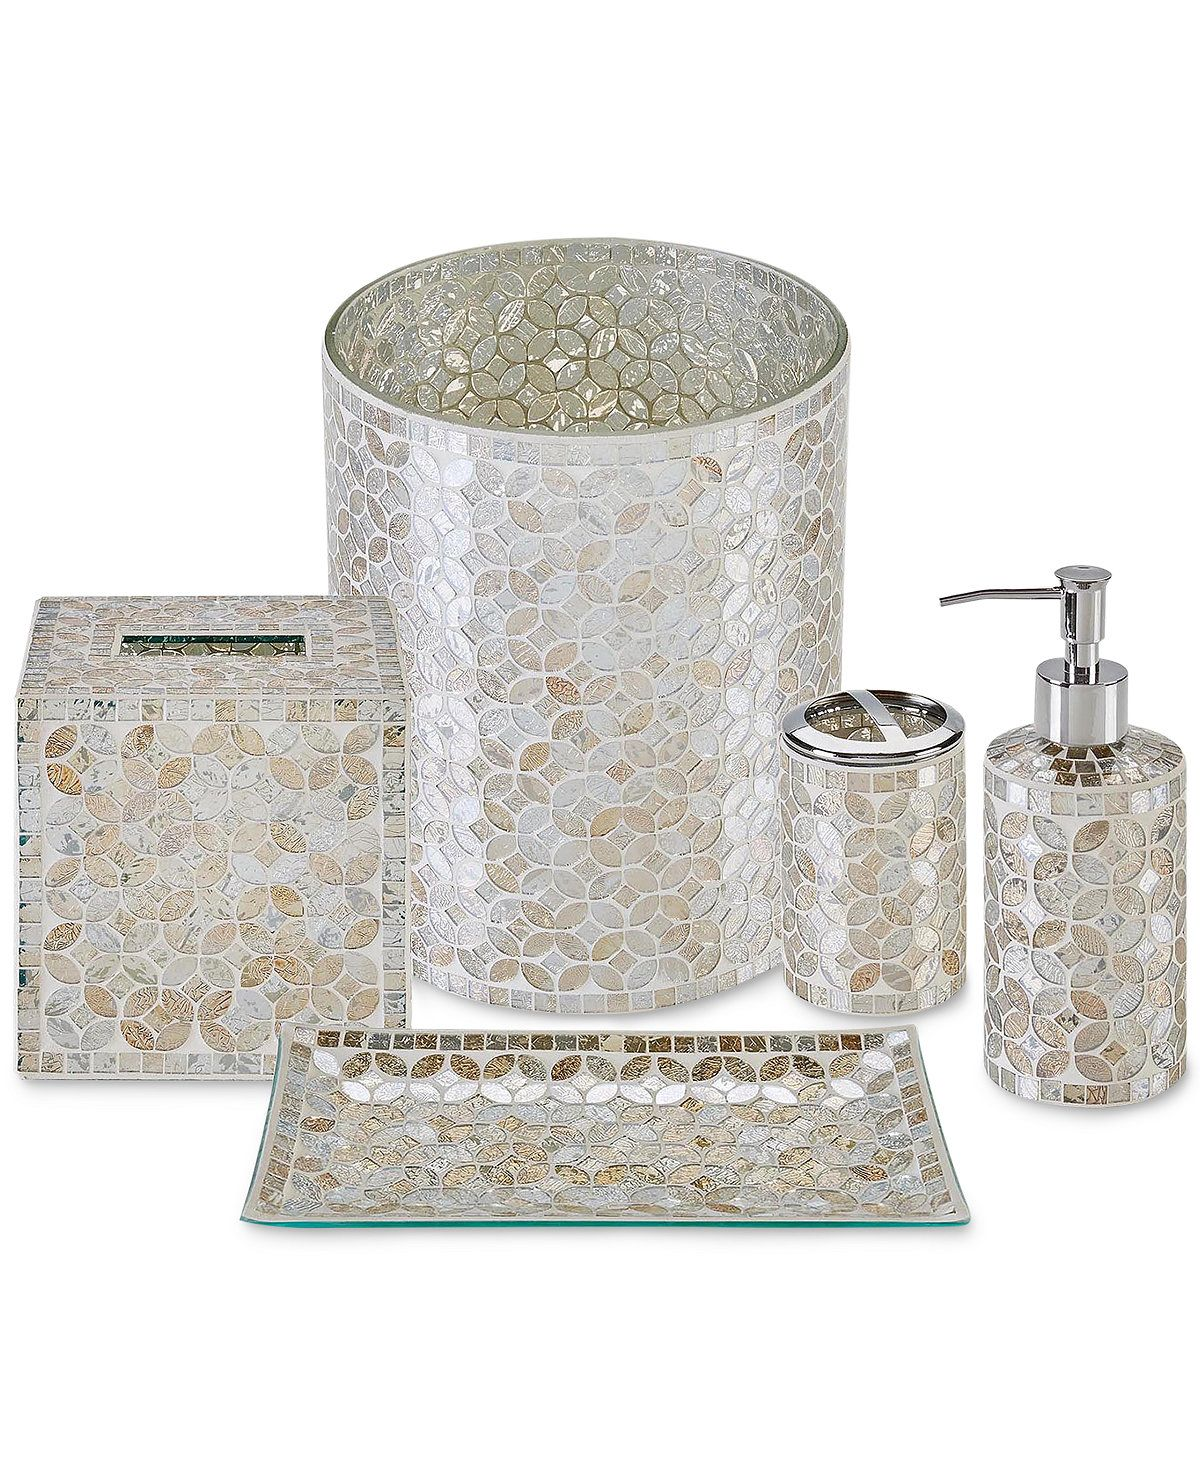 Jla Home Cape Mosaic Bath Accessories A Macy S Exclusive Style Bathroom Bed Sets